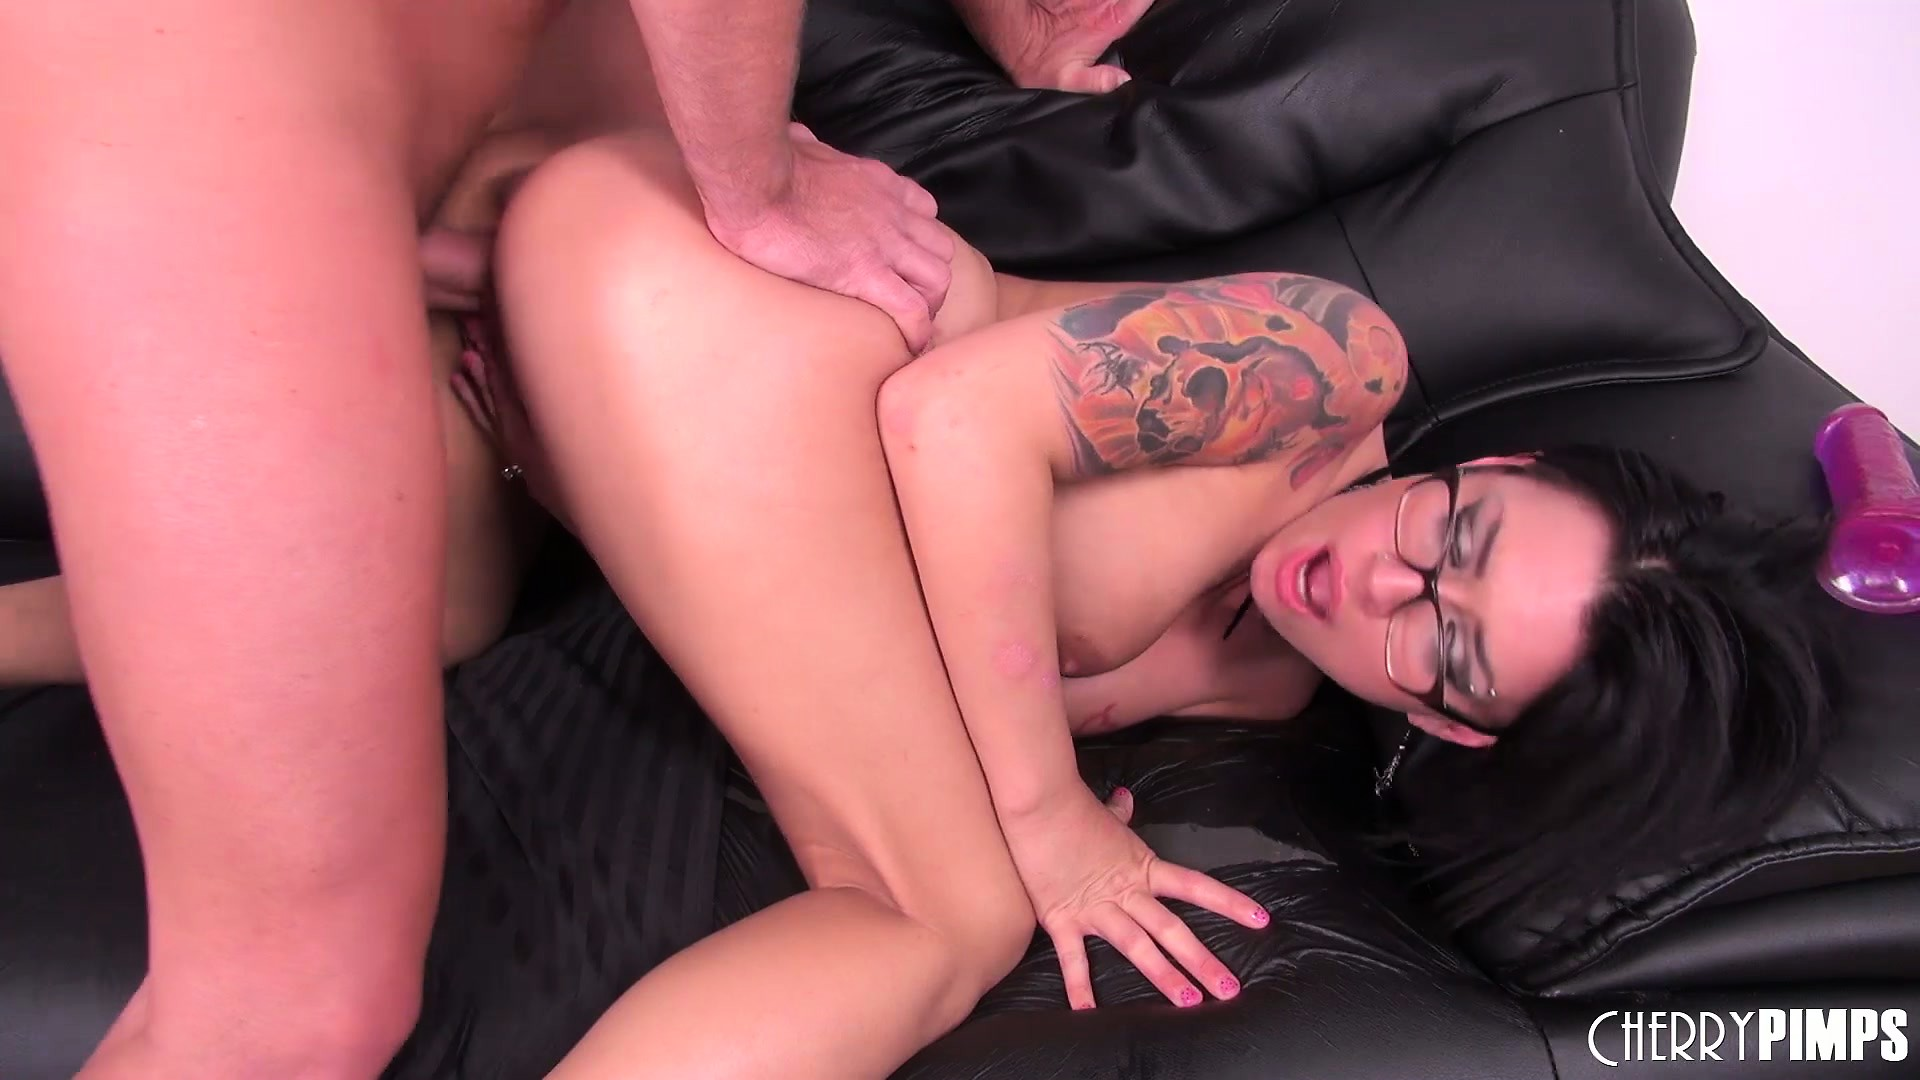 Porn Tube of The Wild Brunette Enjoys A Deep Fucking From Behind And Keeps Wanting More